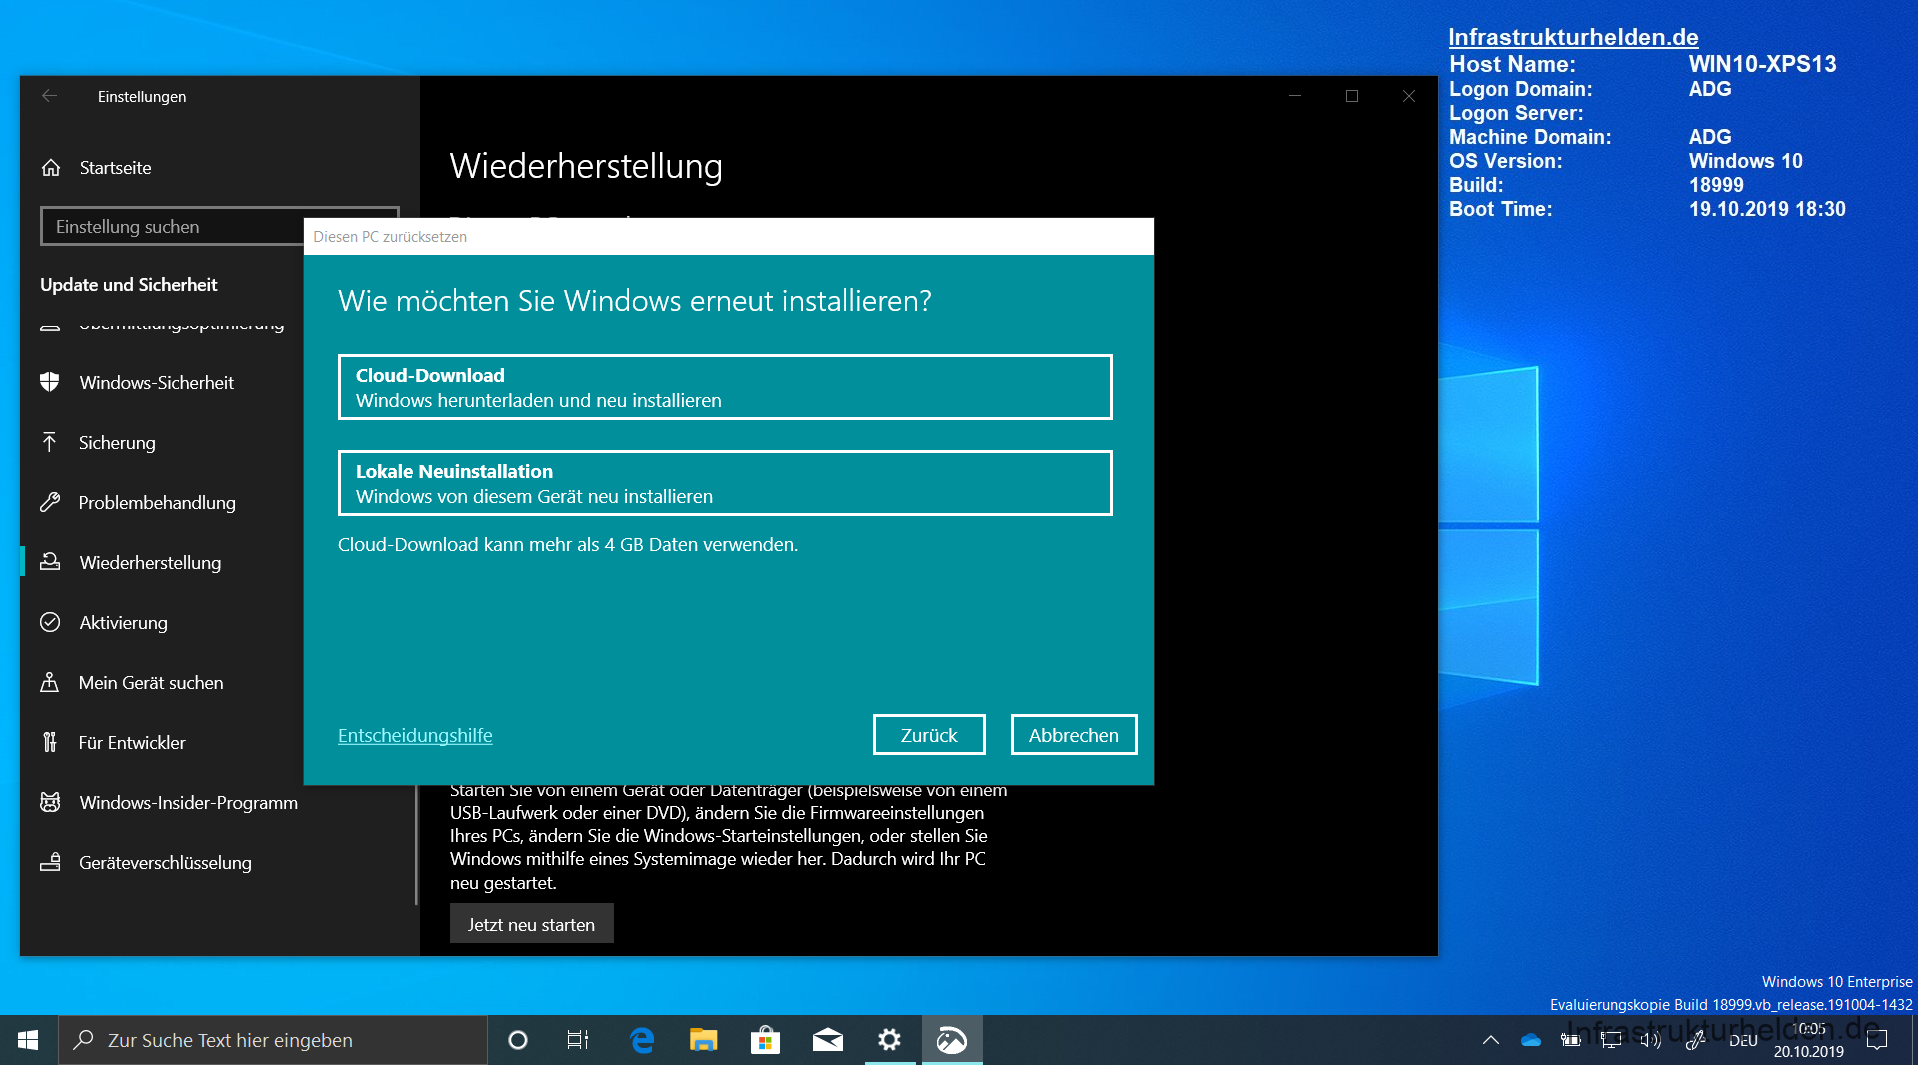 Windows as a Service (WaaS) – Technische Lösungsansätze